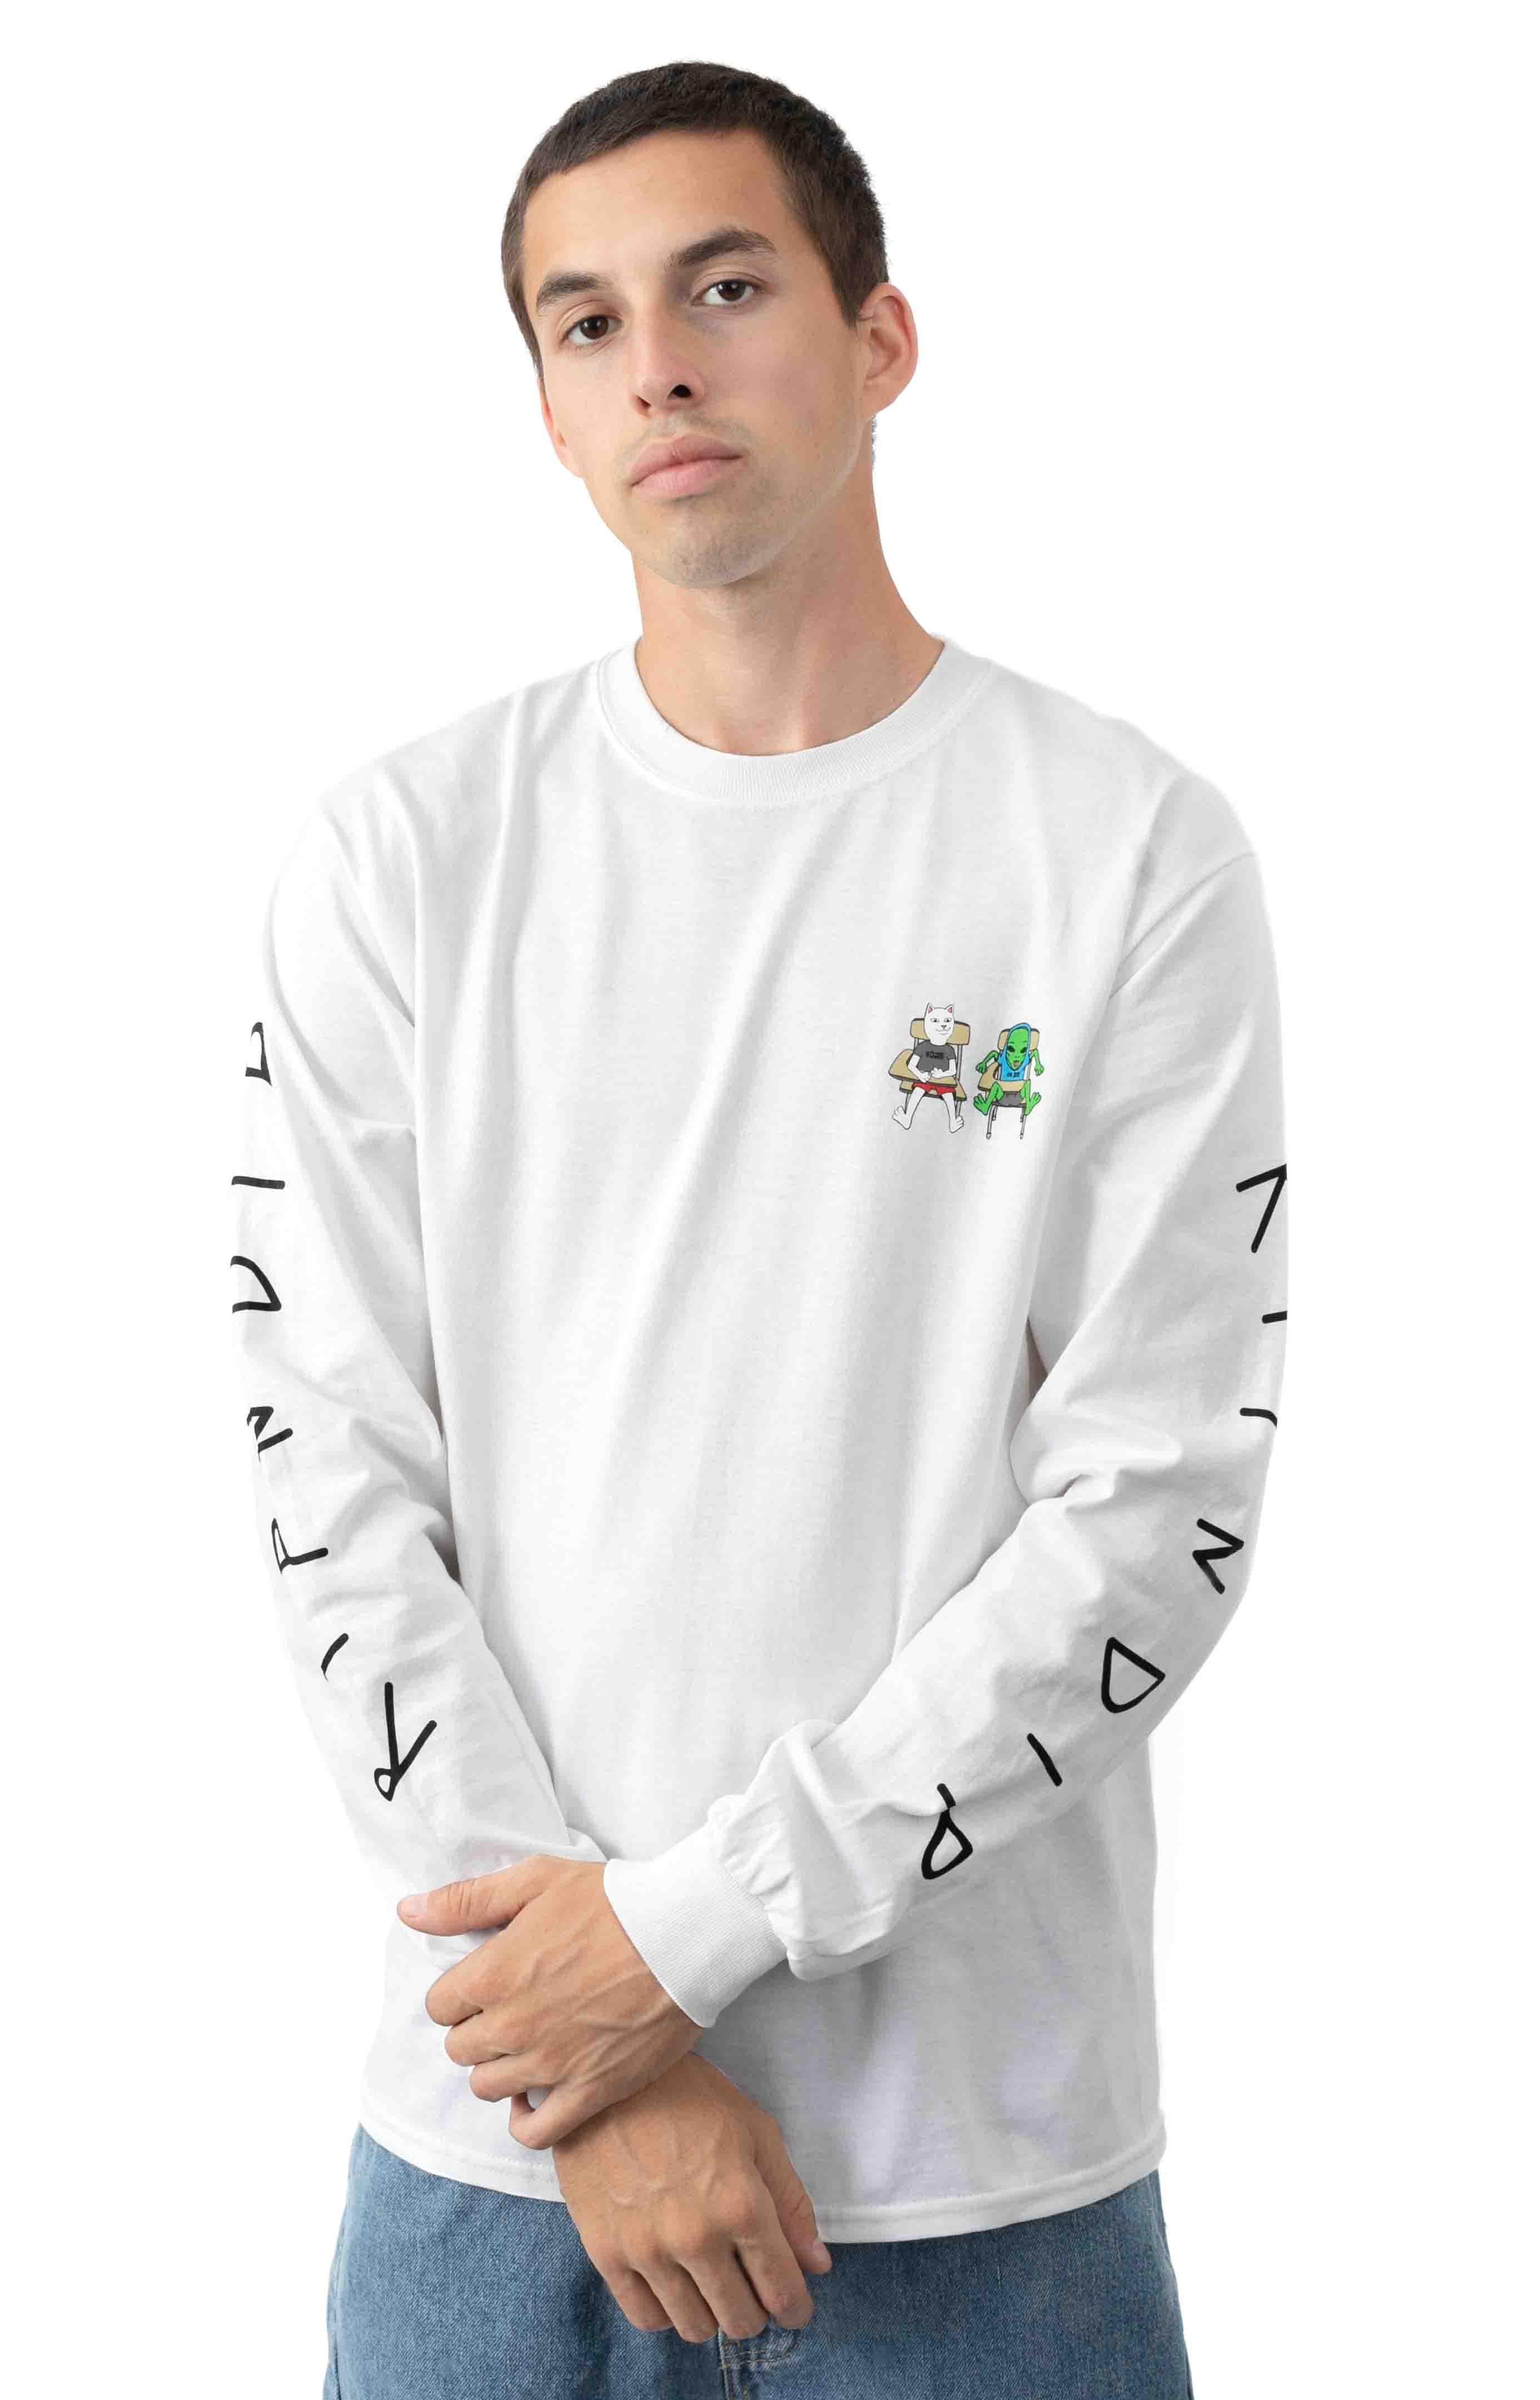 Butts Up L/S Shirt - White  2